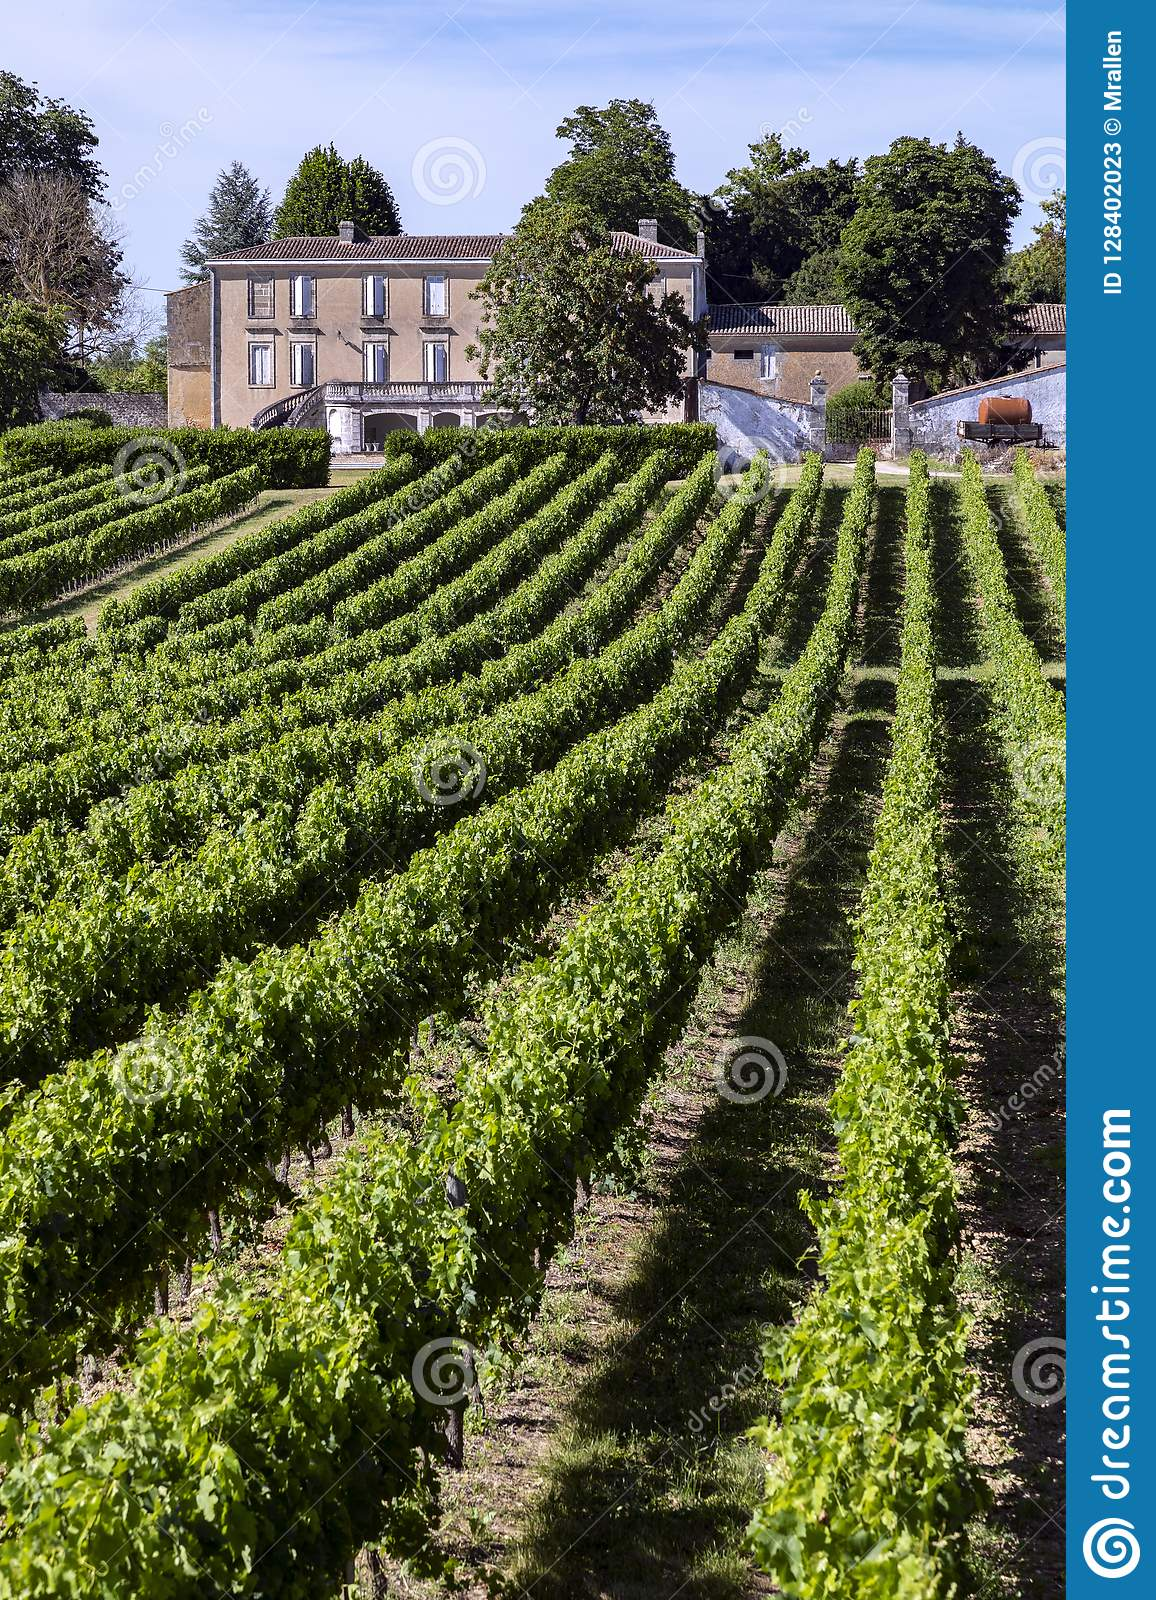 Wine Production - Vineyard in the Dordogne - France